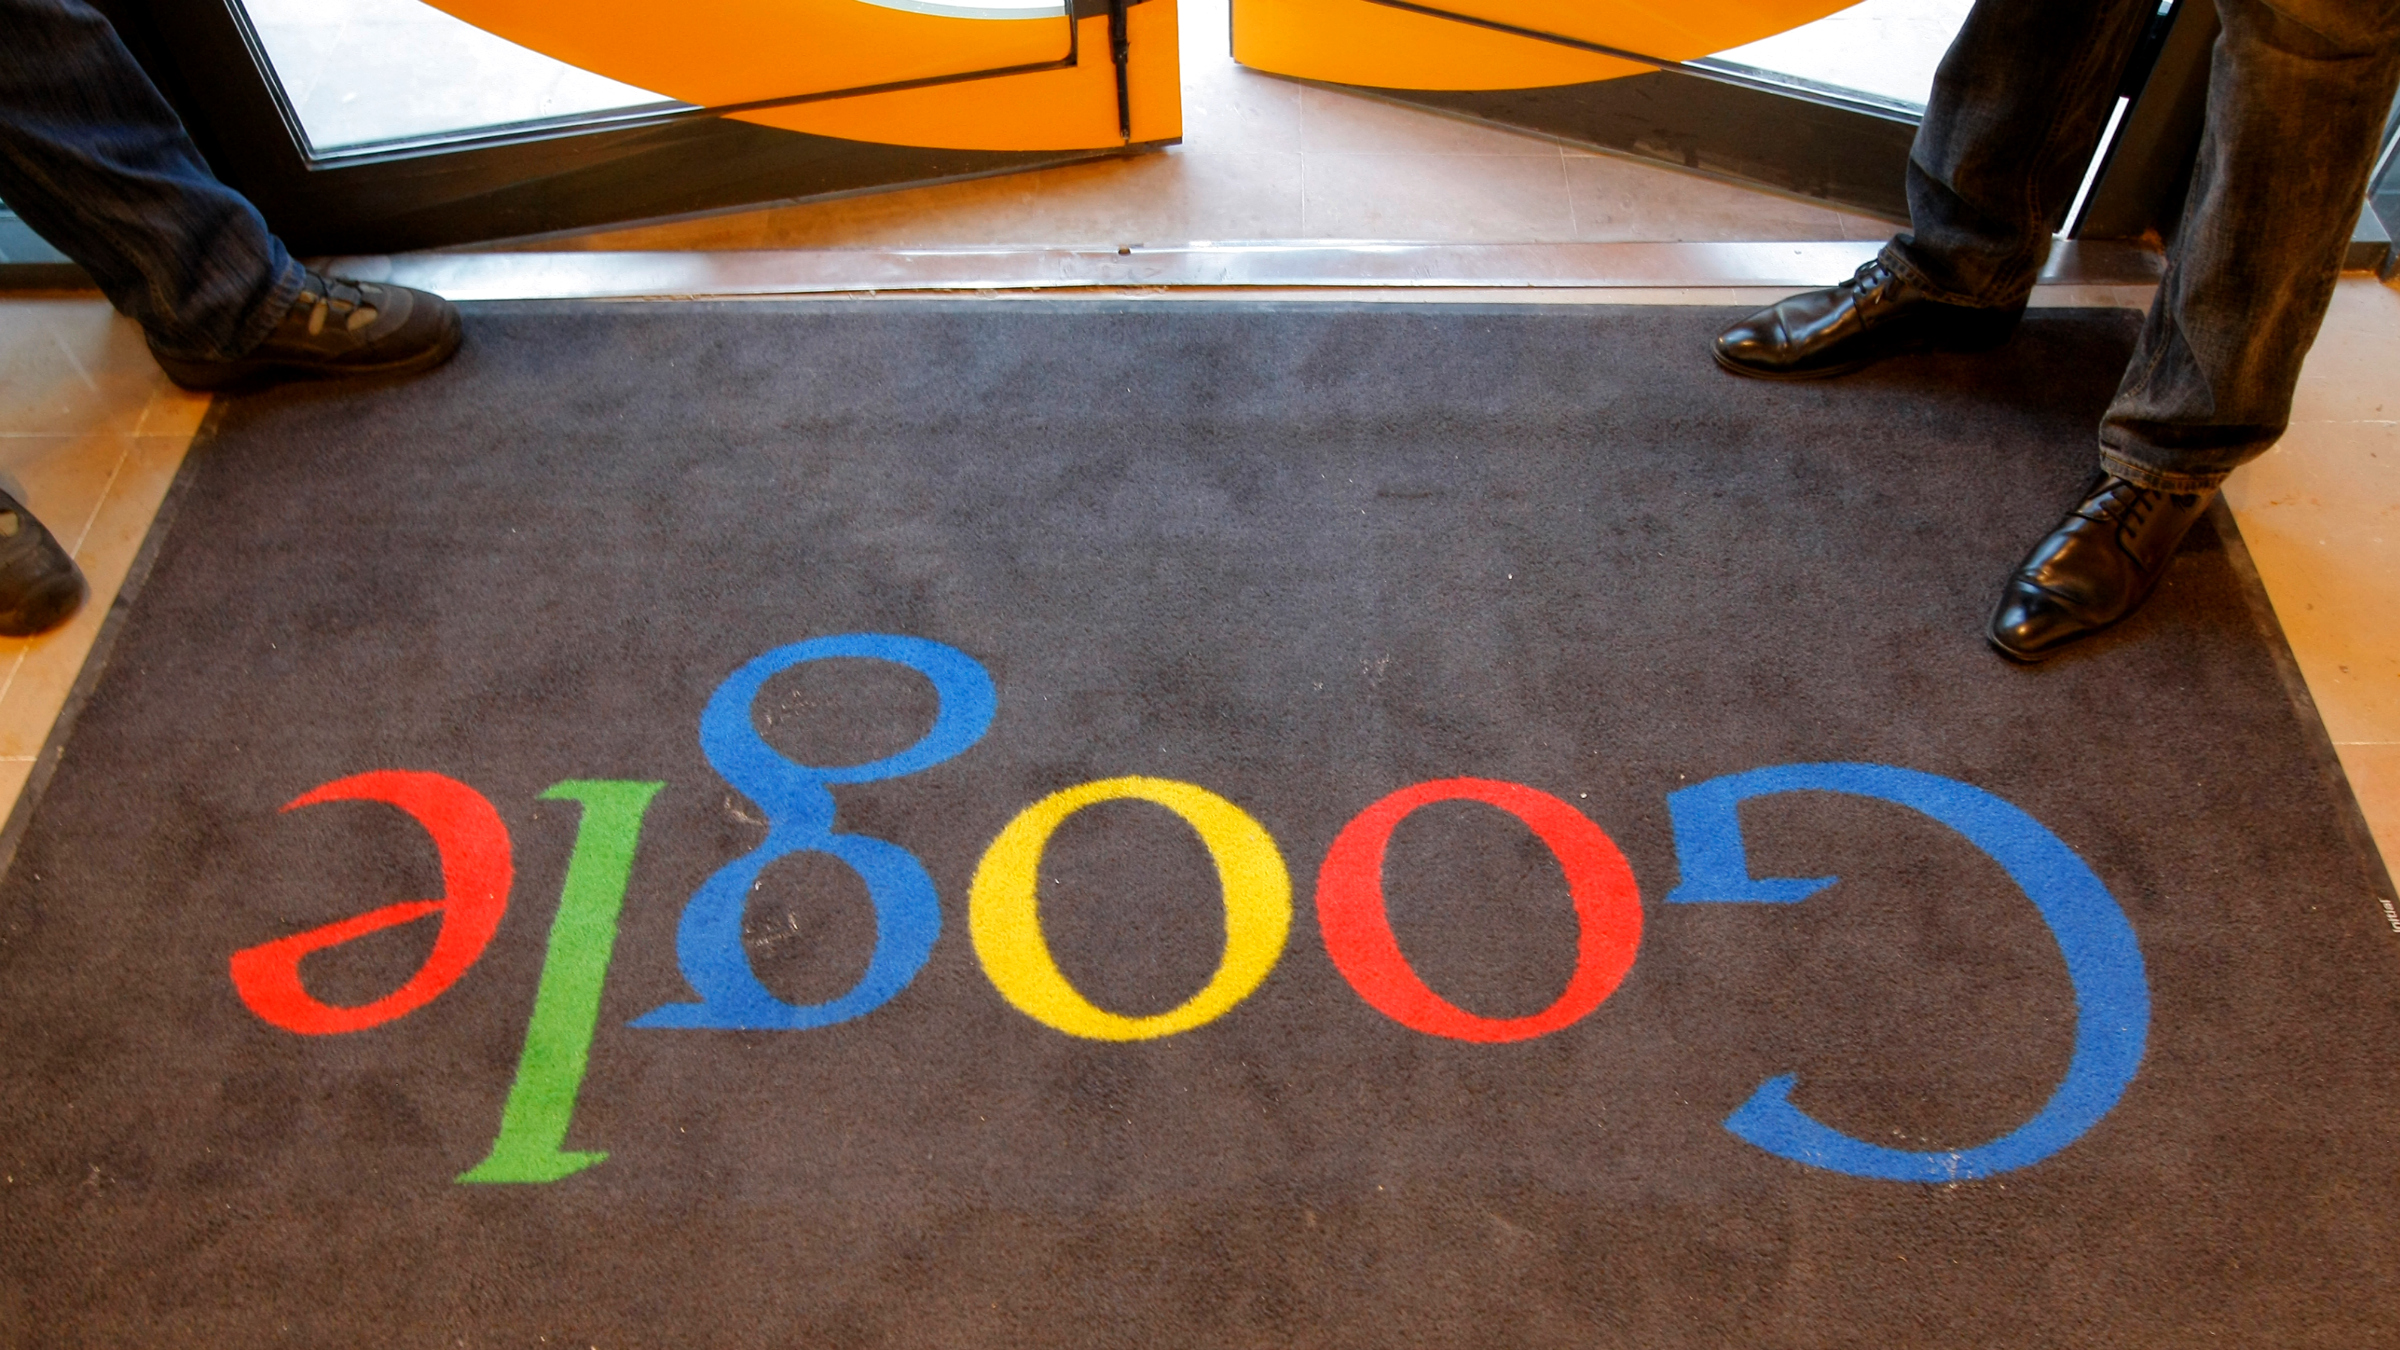 Google welcome mat